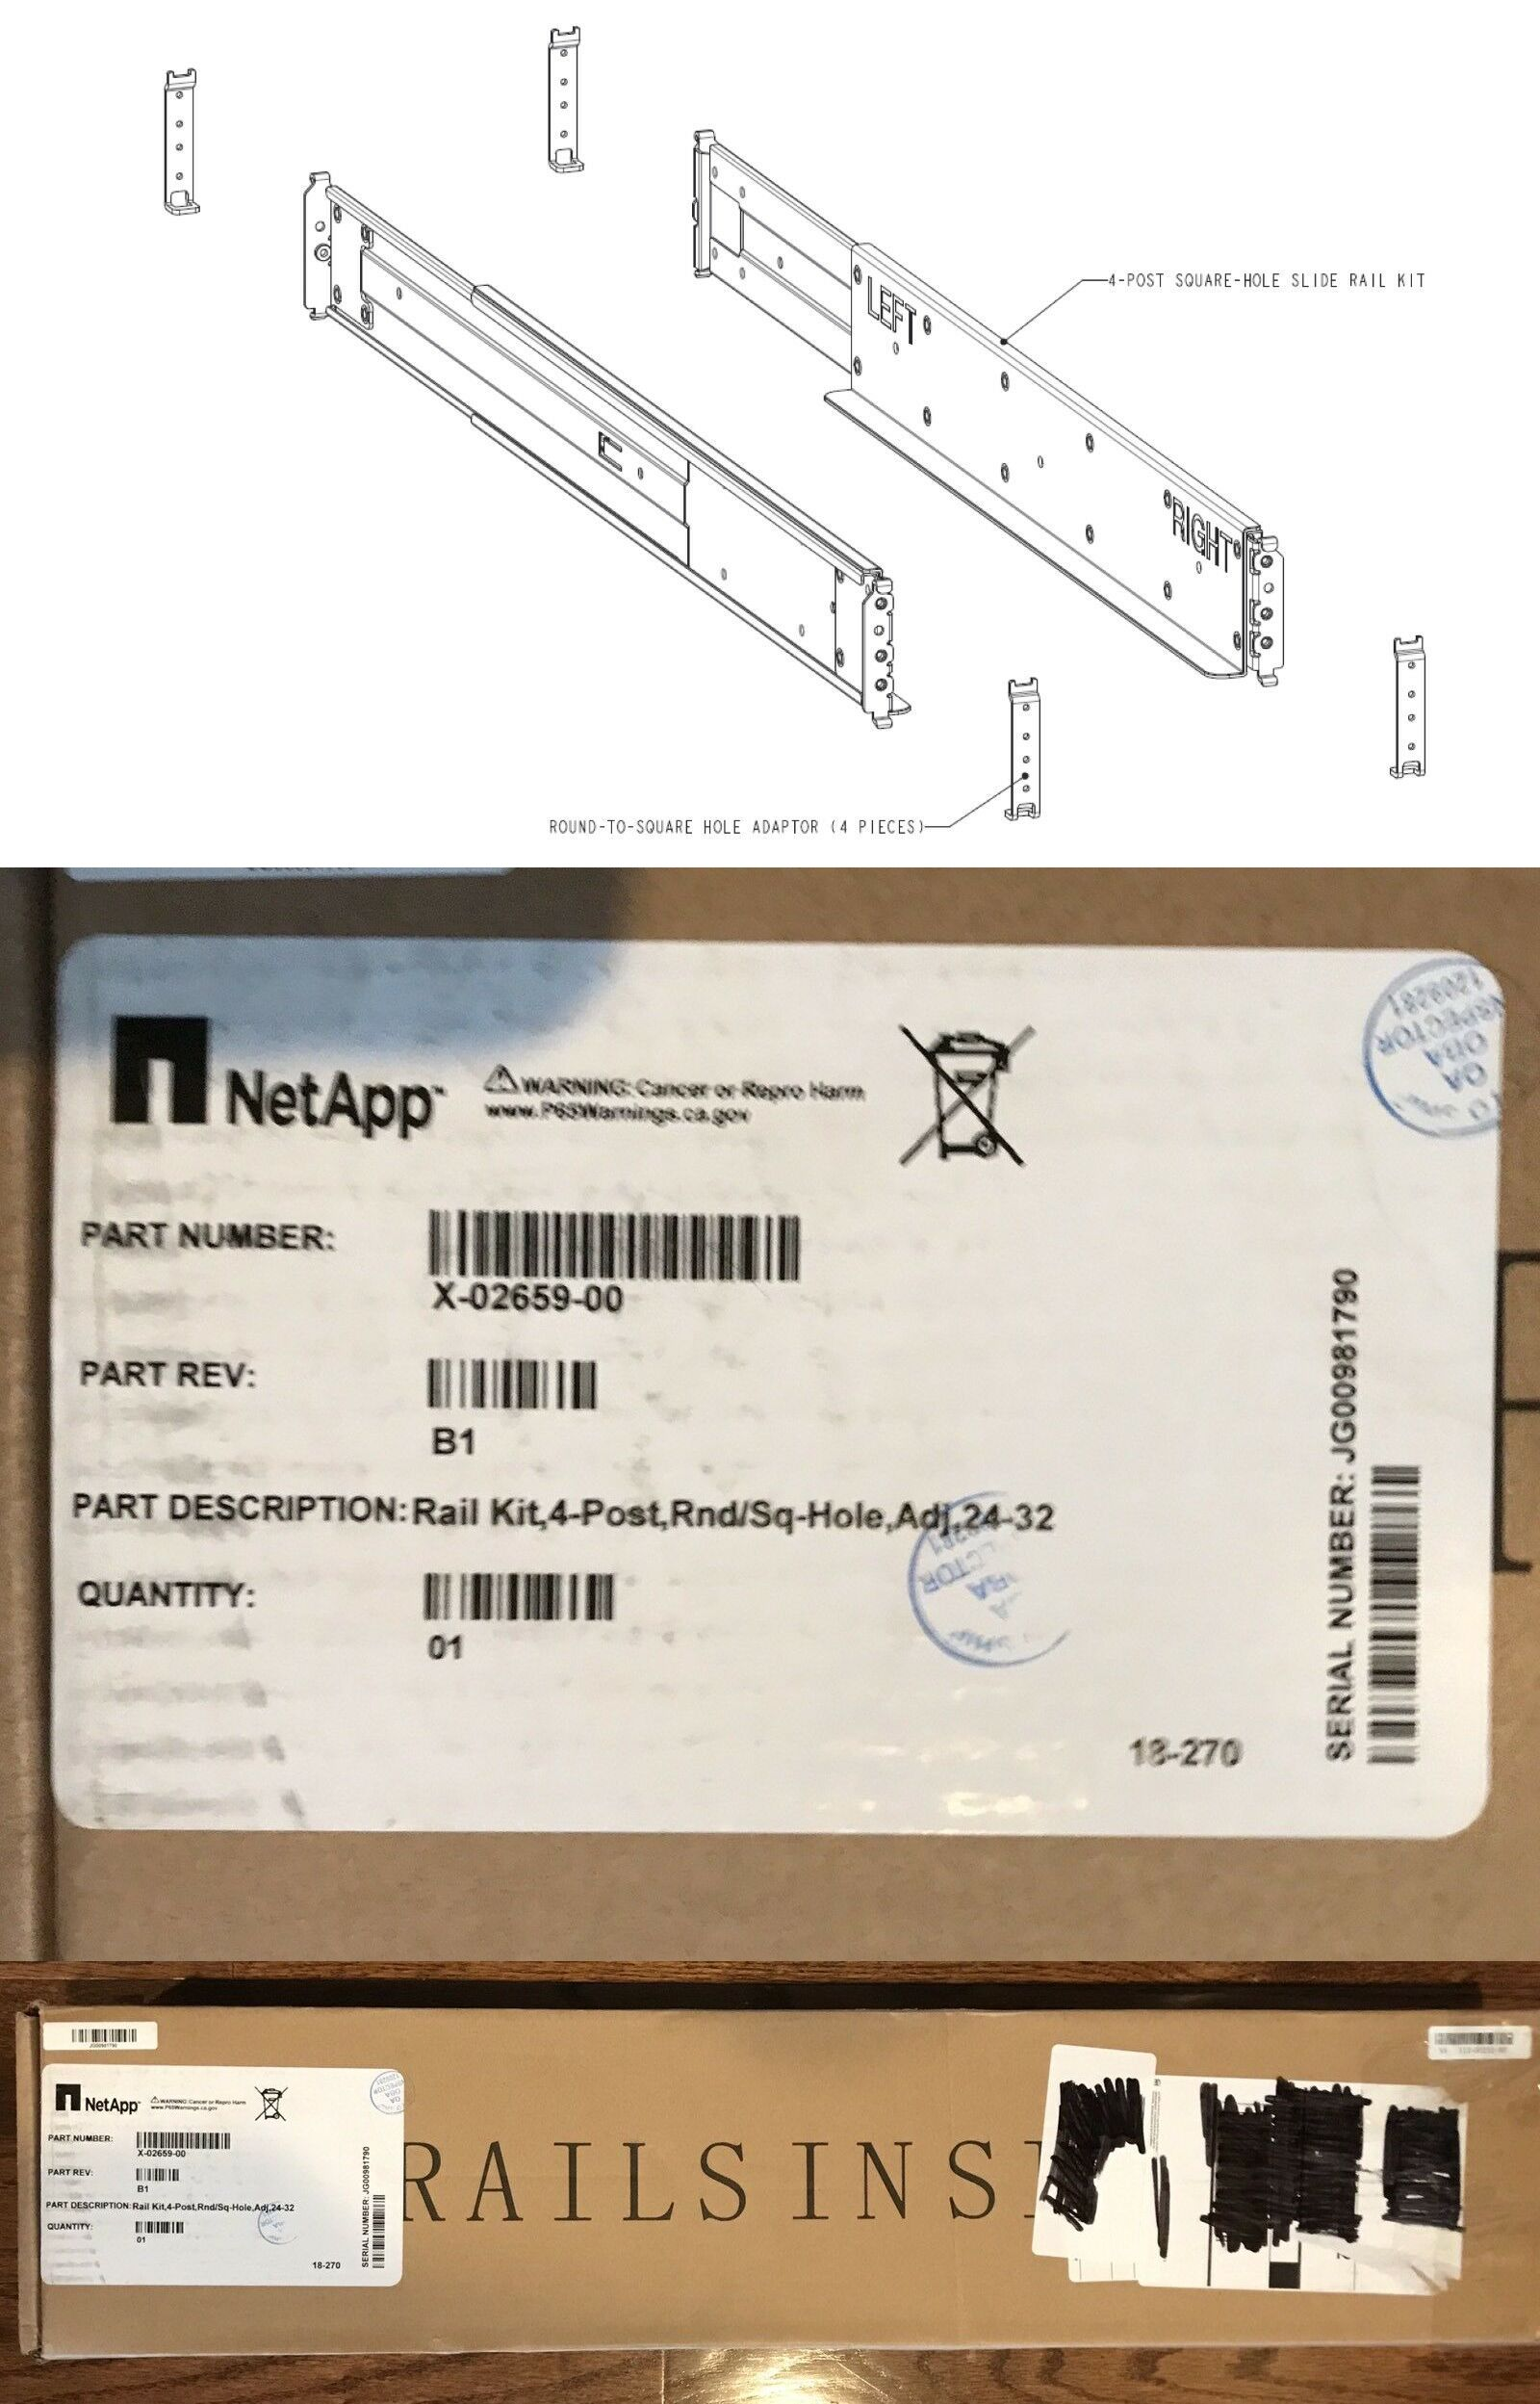 disk array components 58322 netapp x 02659 00 rail kit 4 post square or round hole 24 32 rail buy it now only 35 on ebay array components netapp [ 1600 x 2497 Pixel ]